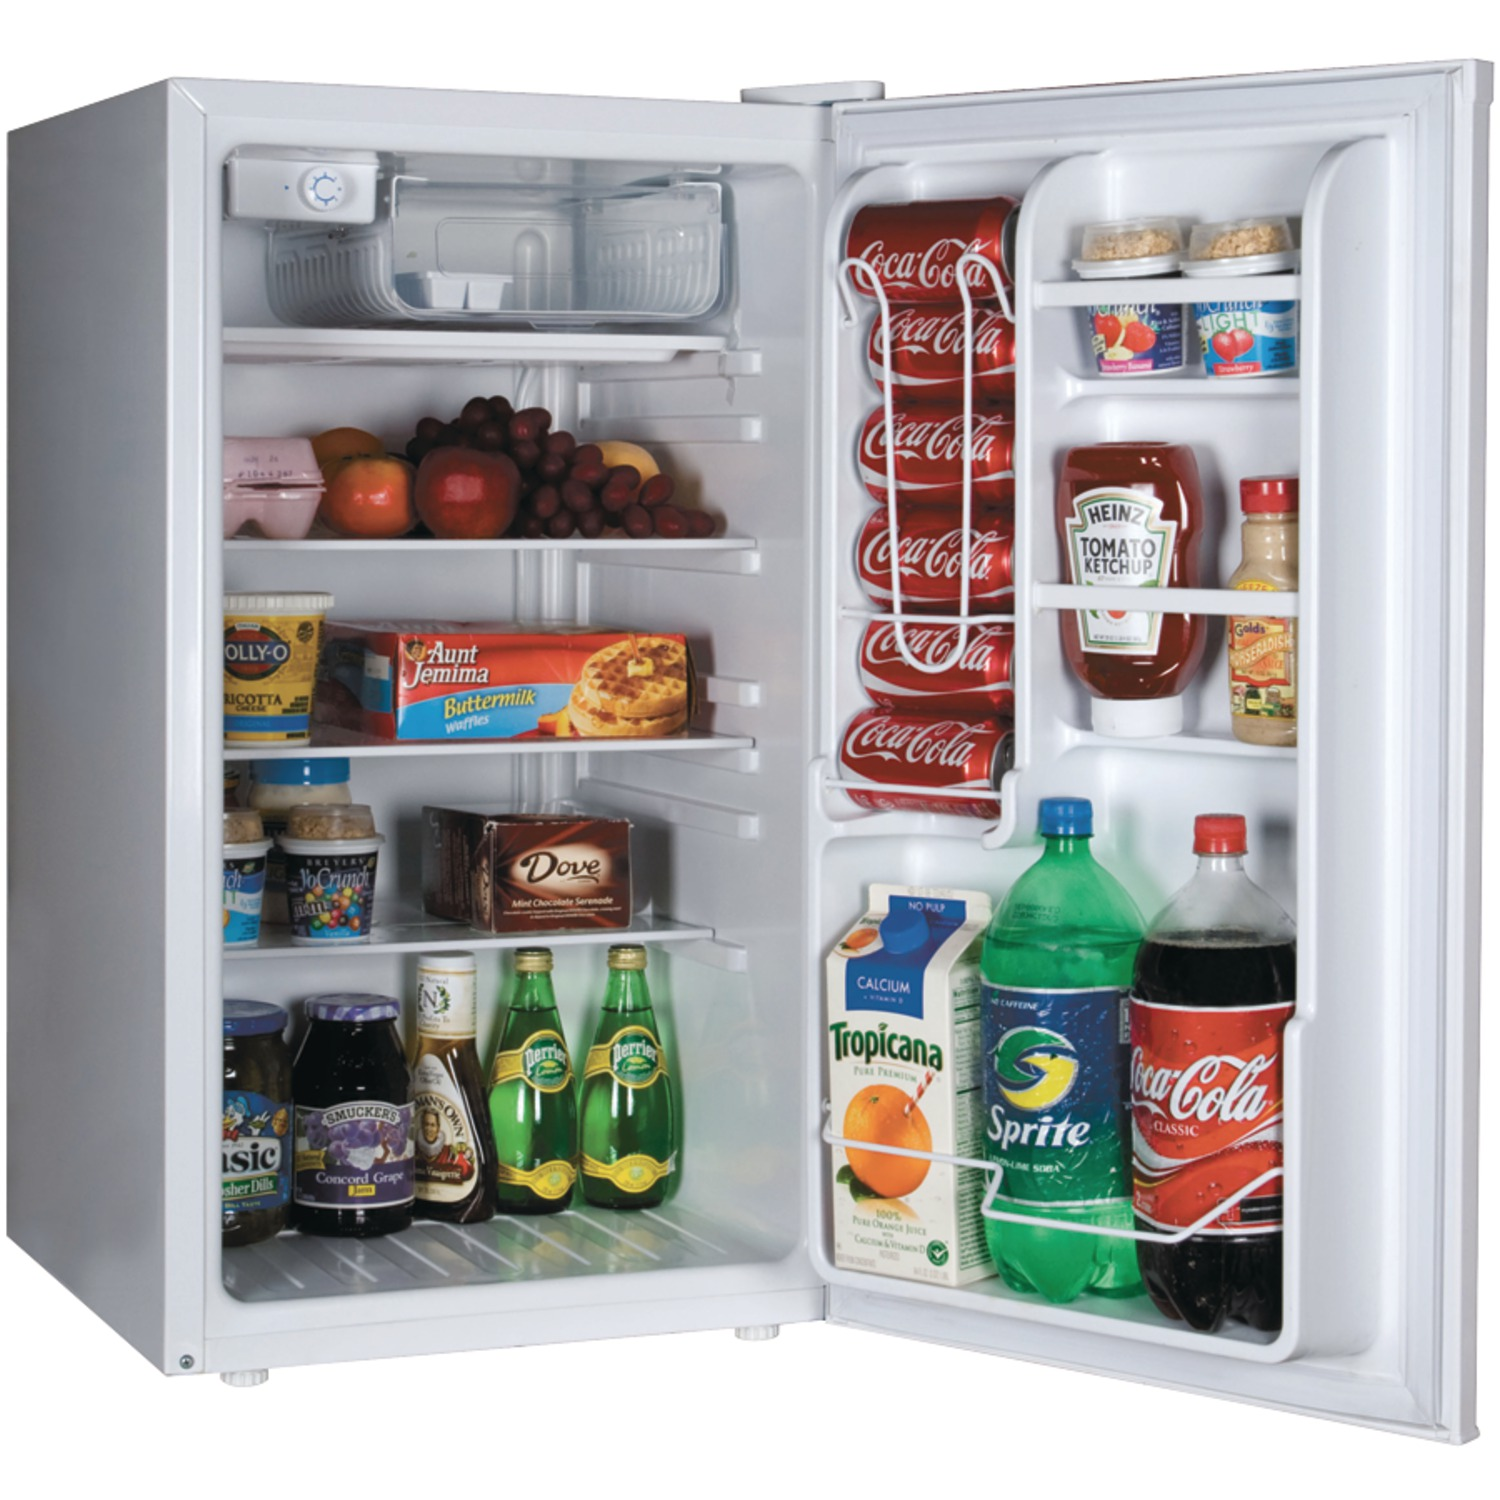 15 Top Mini Fridges For Your Favorite Food And Beverages